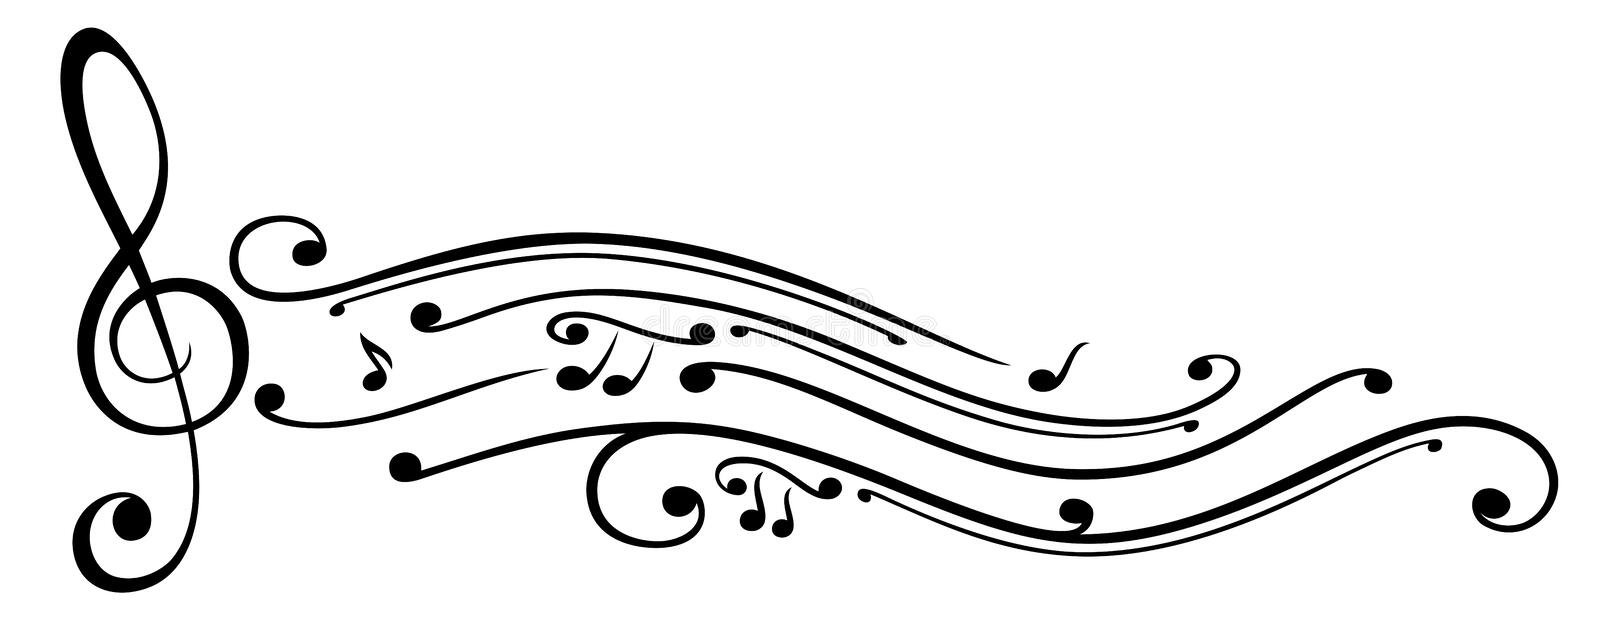 Music, music notes, clef. Abstract clef with music notes vector illustration